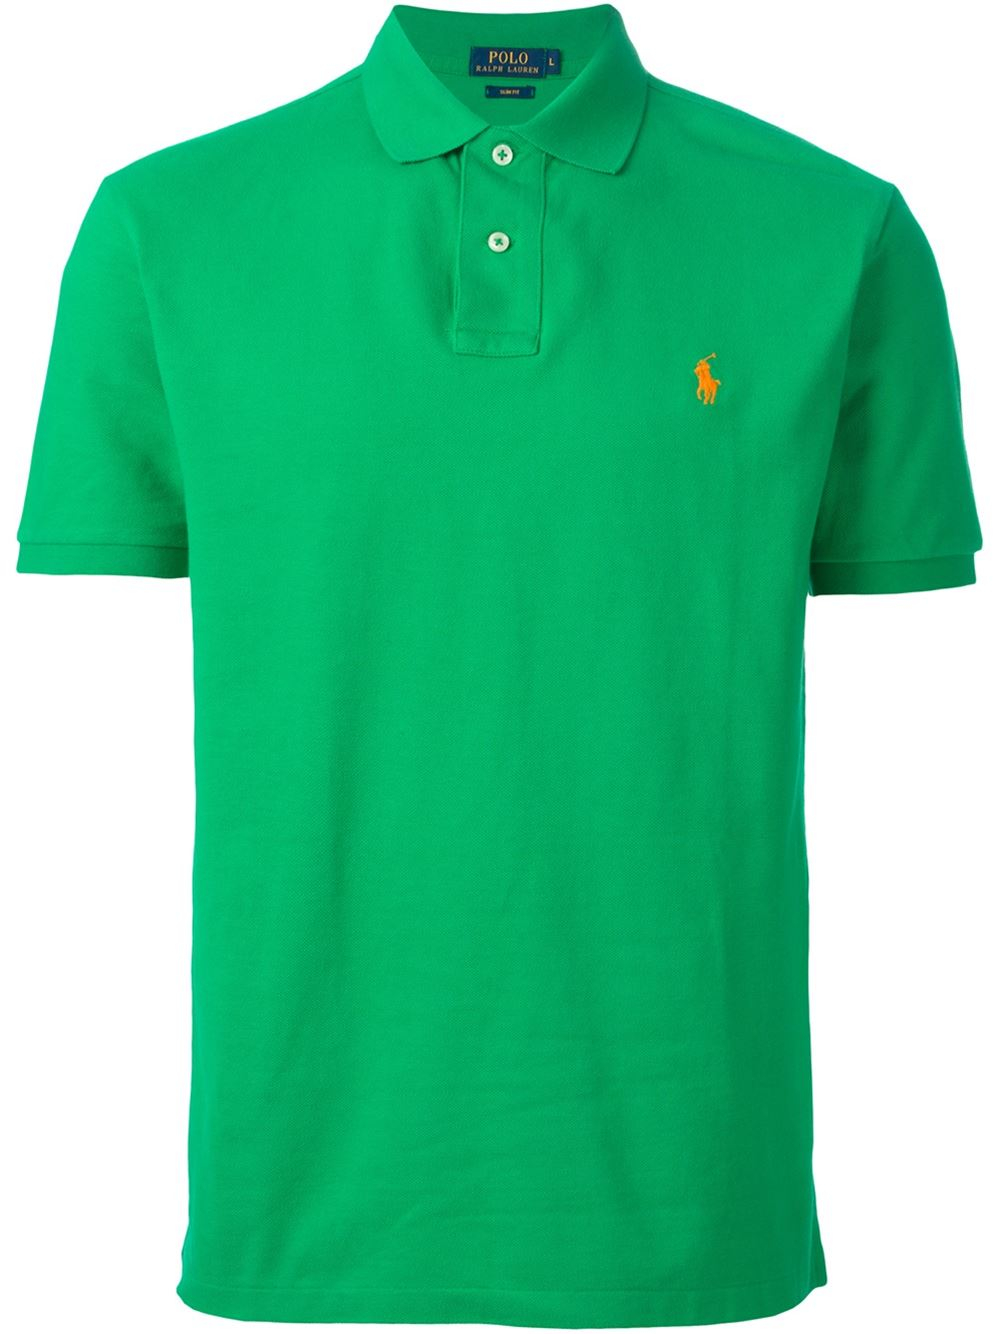 Polo ralph lauren embroidered logo polo shirt in green for for Polo shirts with embroidery